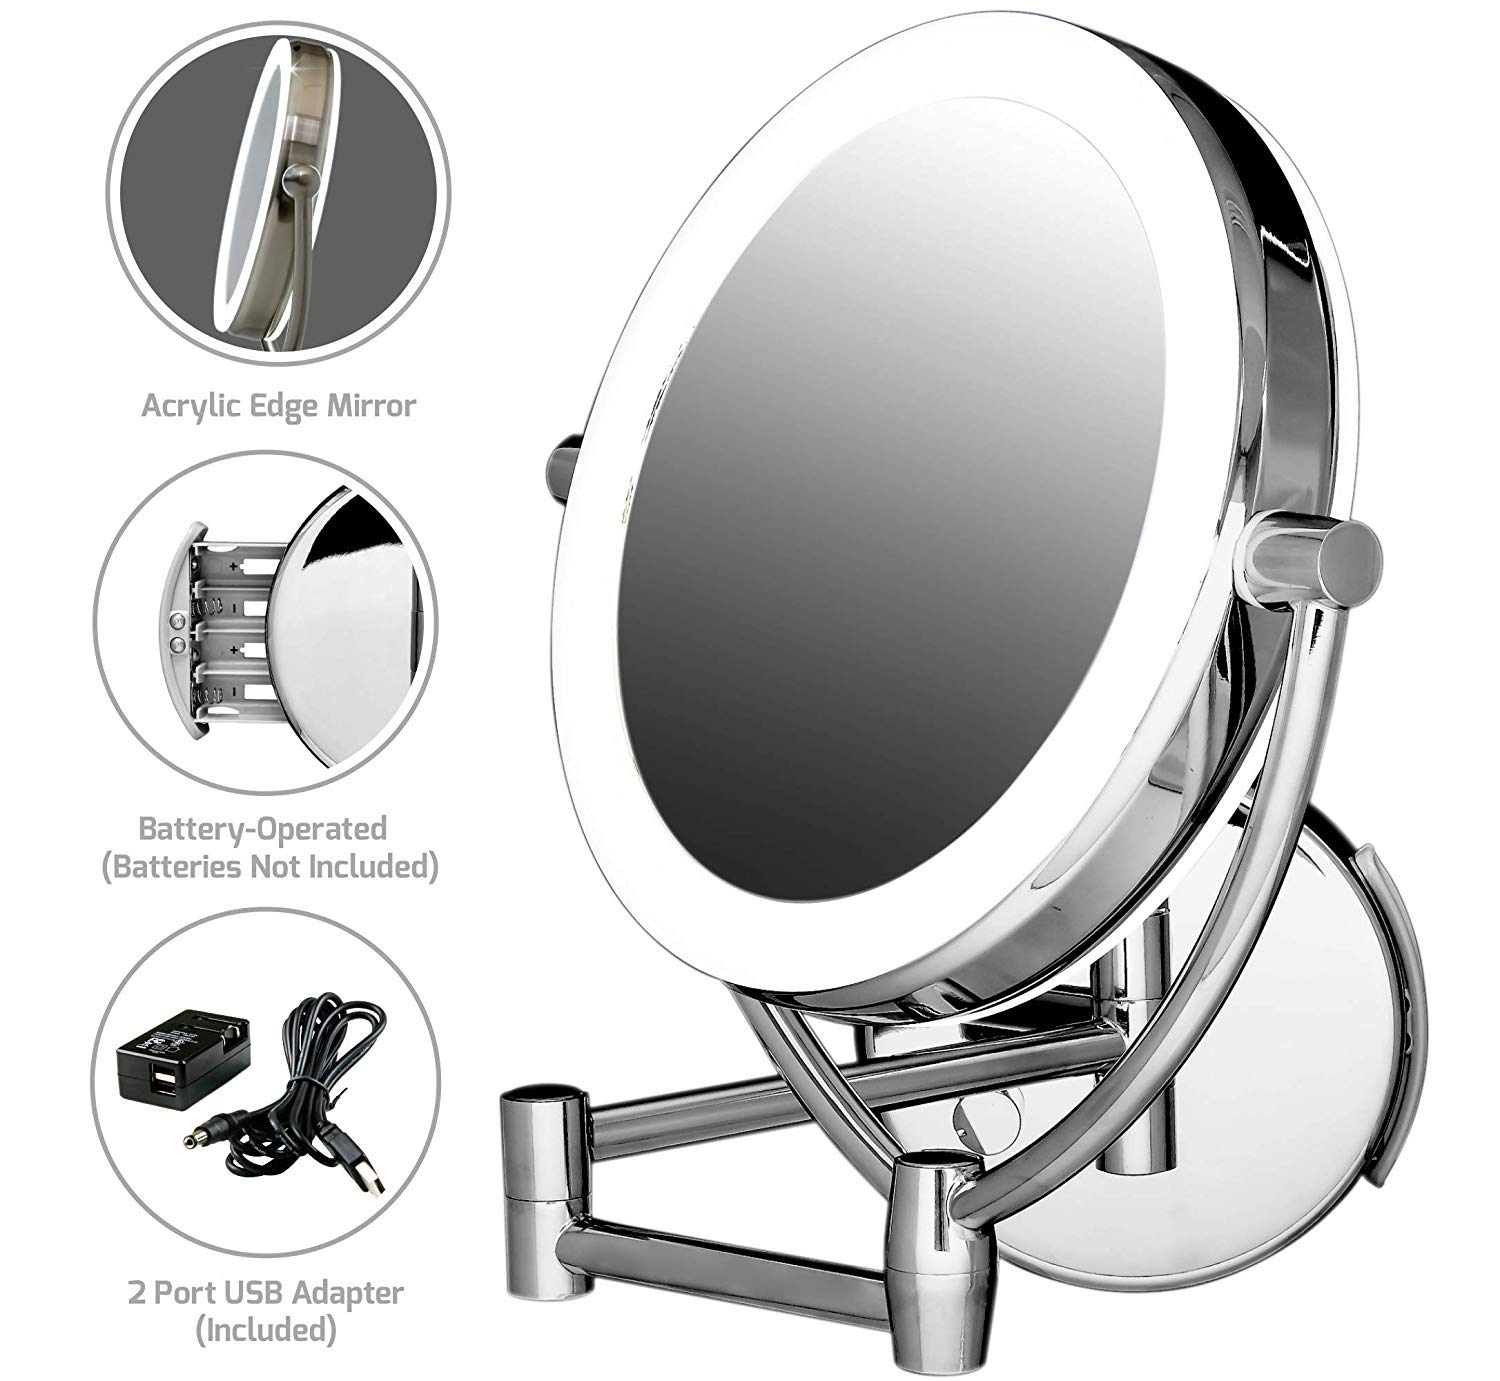 Ovente Wall Mount Mirror, 1 10 Magnification, Premium Acrylic Frame, Diffused LED Ring Light, 9.5 , Battery- or USB Adapter-Operated MLW45CH1X10X